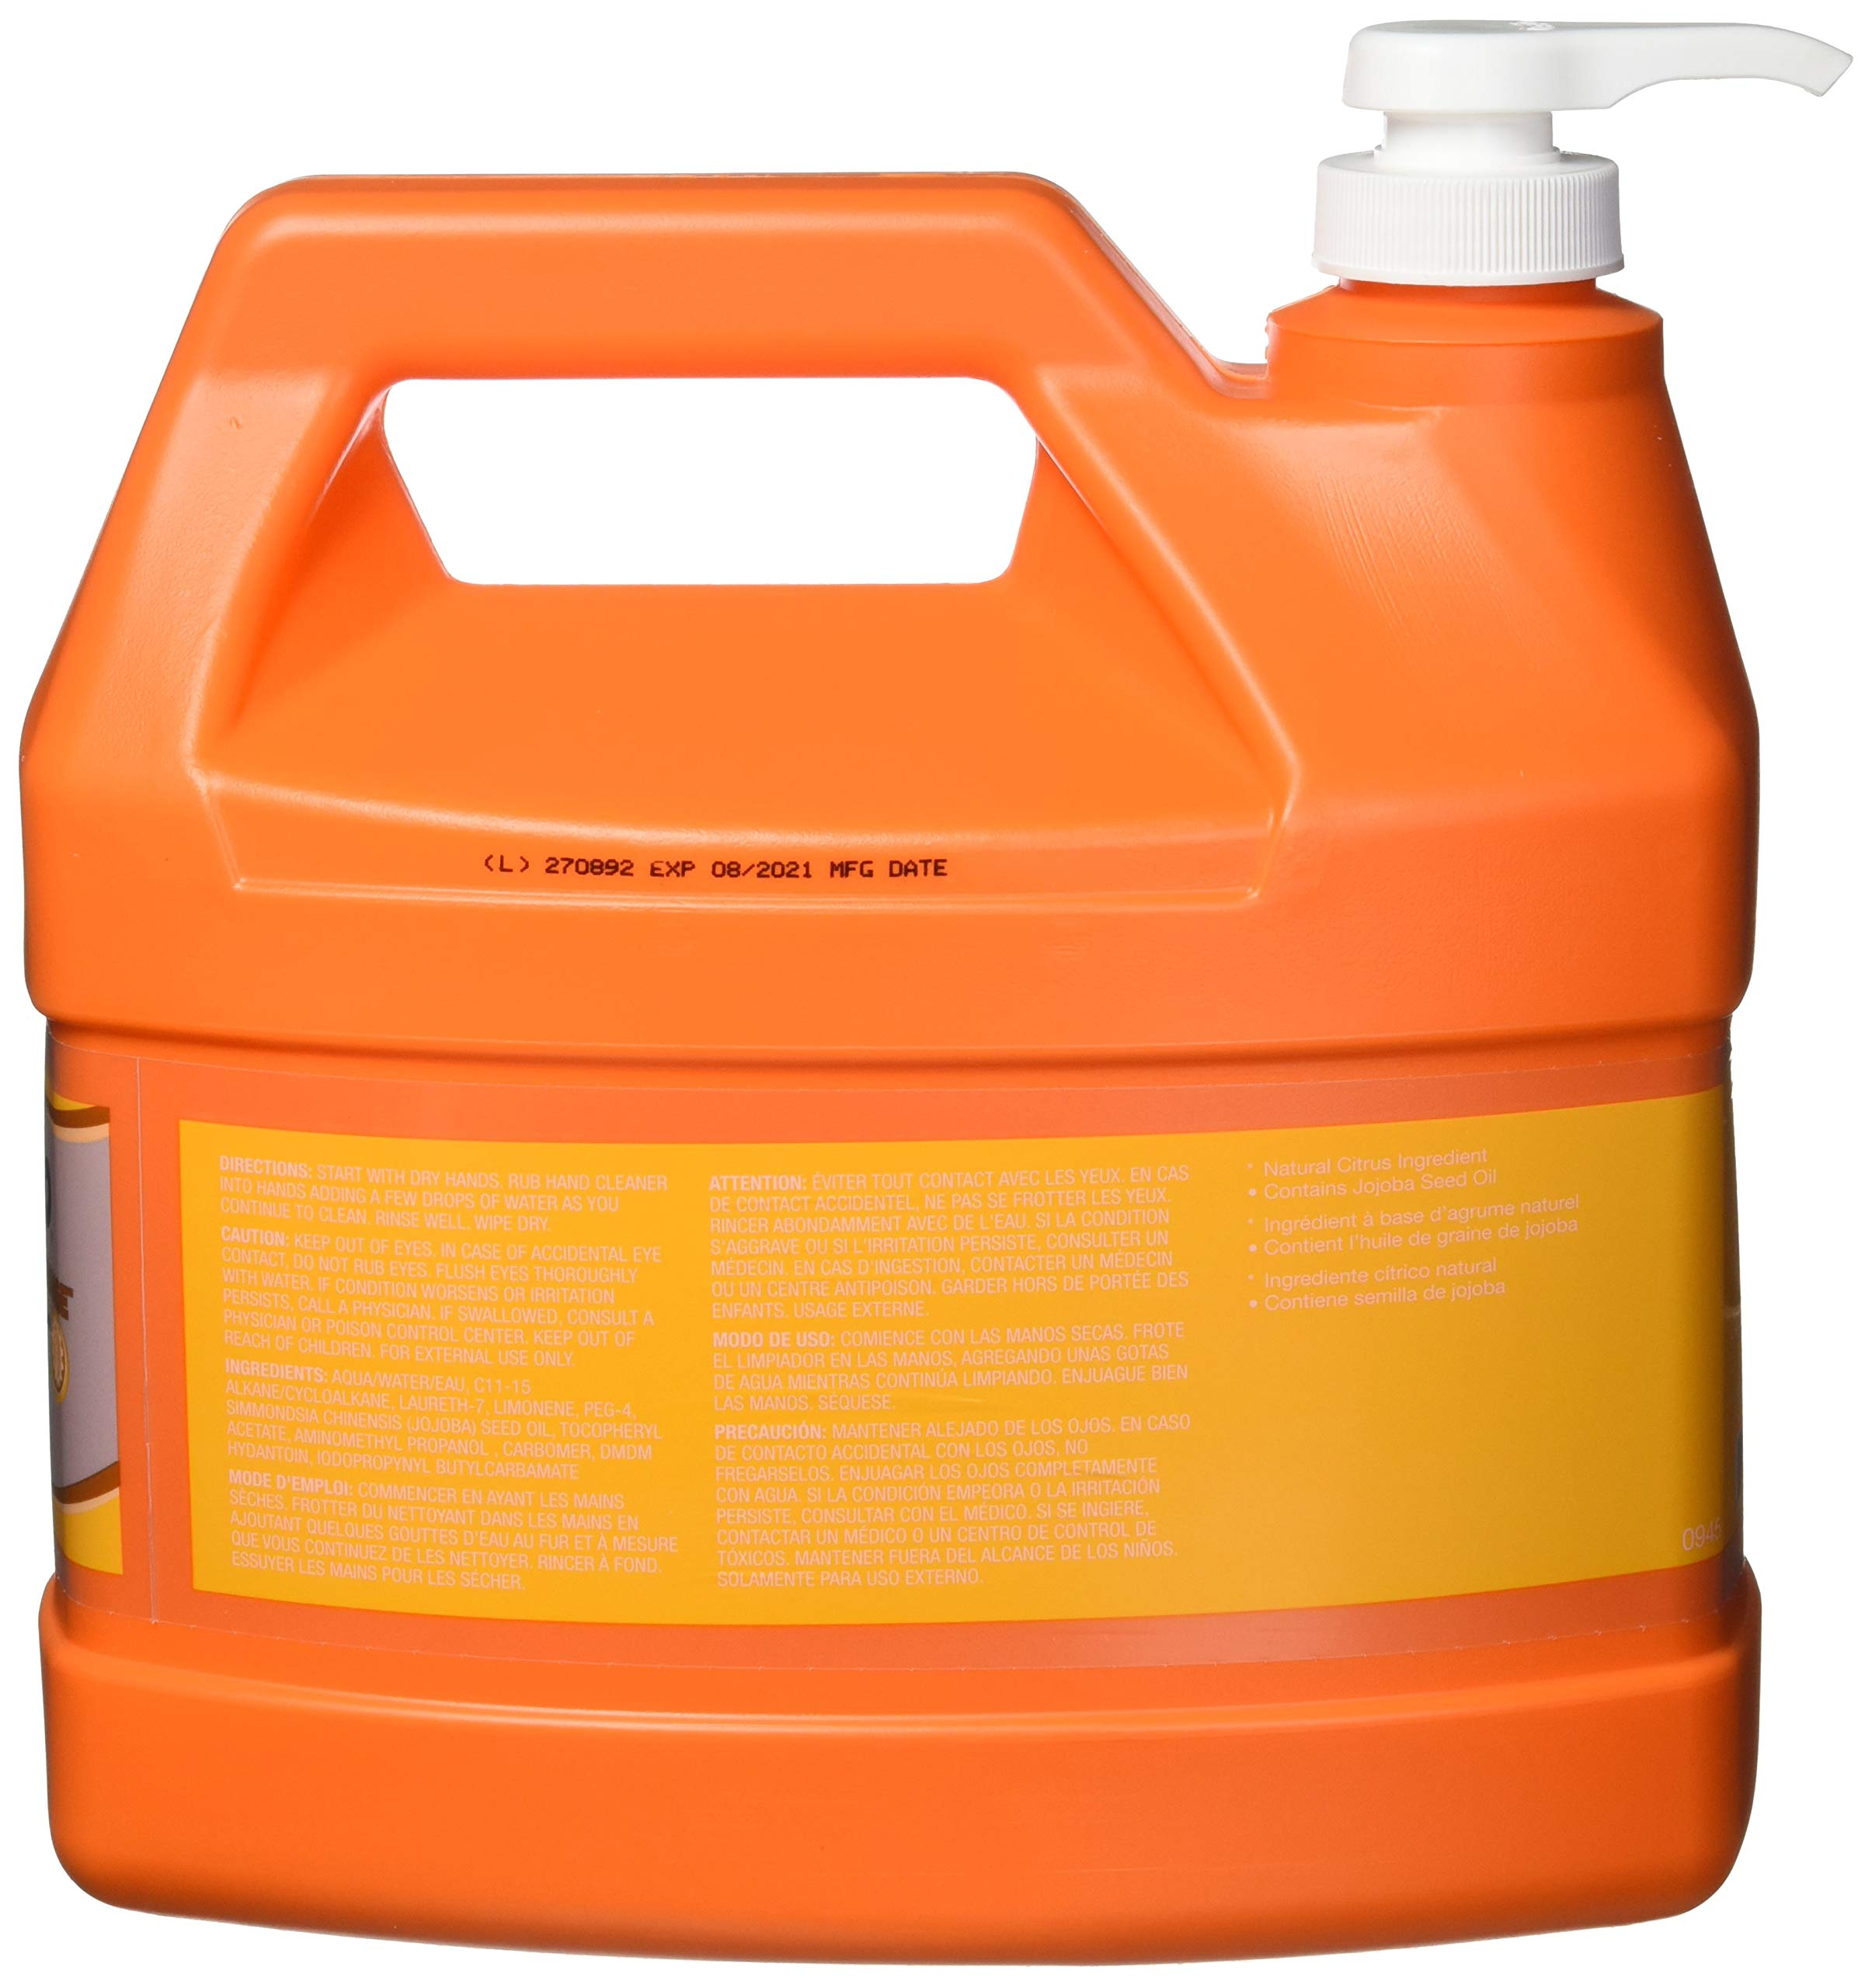 GOJO Natural Orange Smooth Hand Cleaner, Citrus Scent, 1 Gallon Quick Acting Hand Cleaner Pump Bottle (Case of 4) - 0945-04 by Gojo (Image #2)